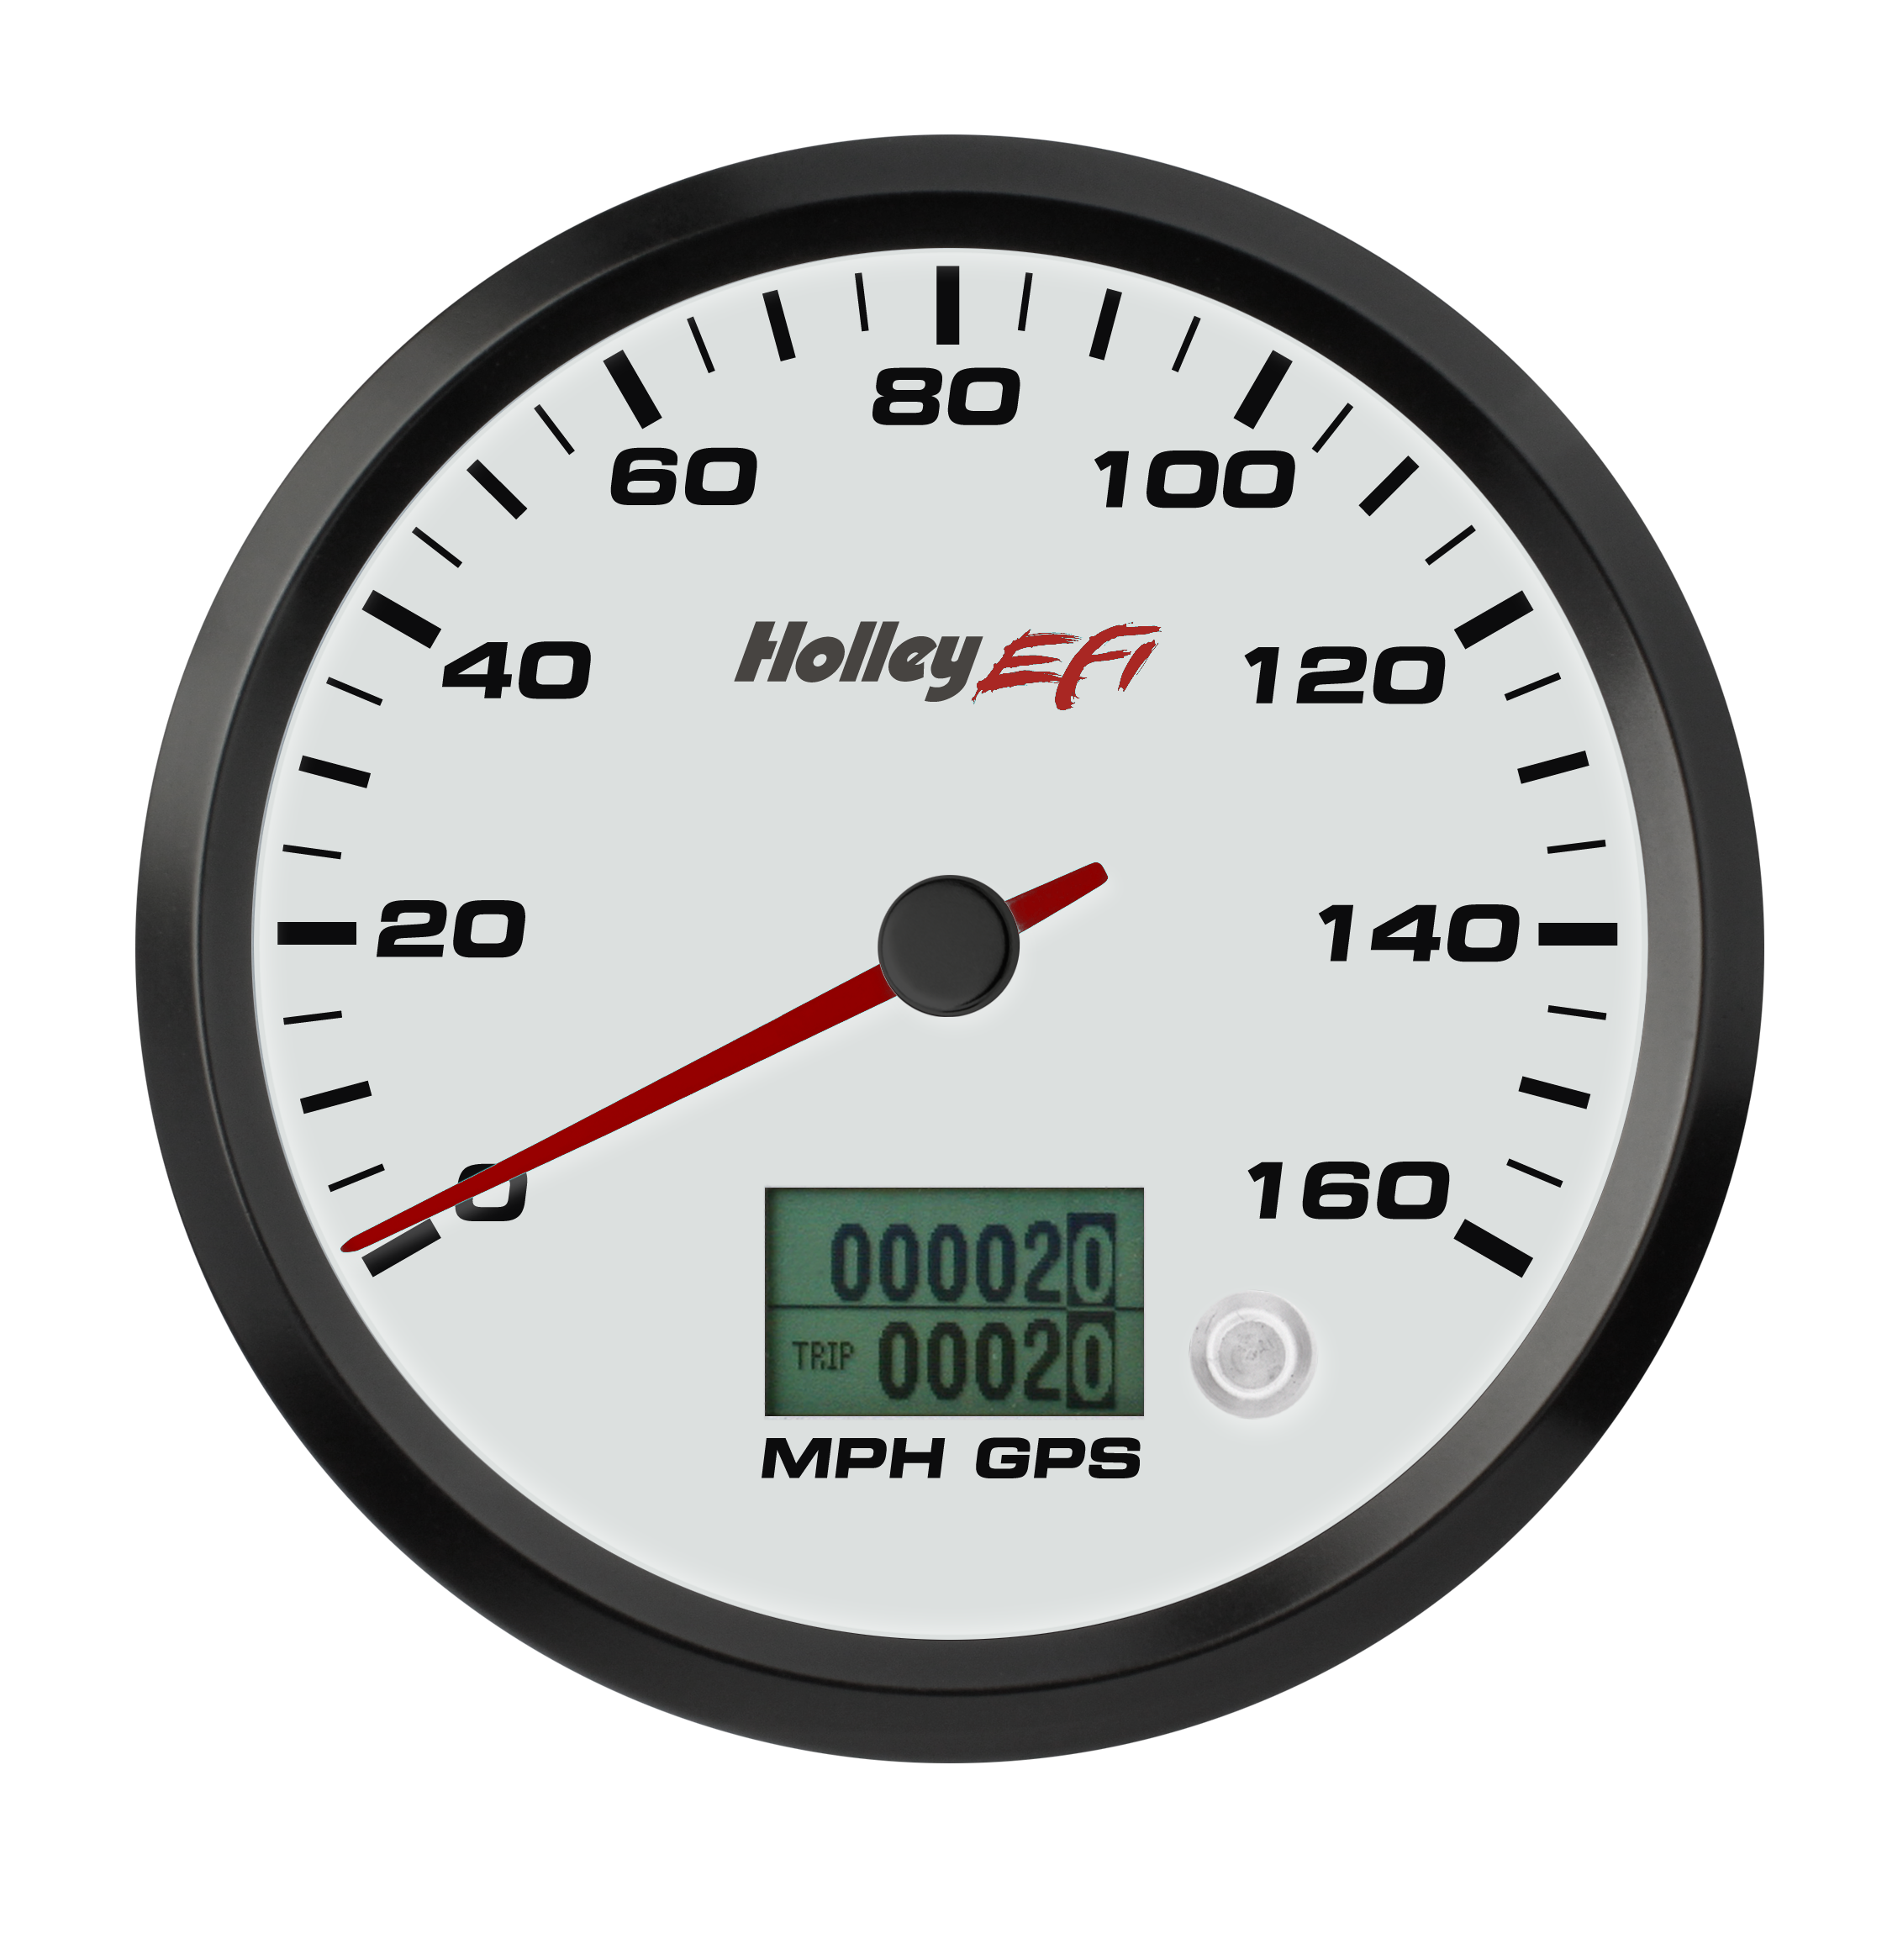 Motorcycle clipart meter. Speedometer png images free